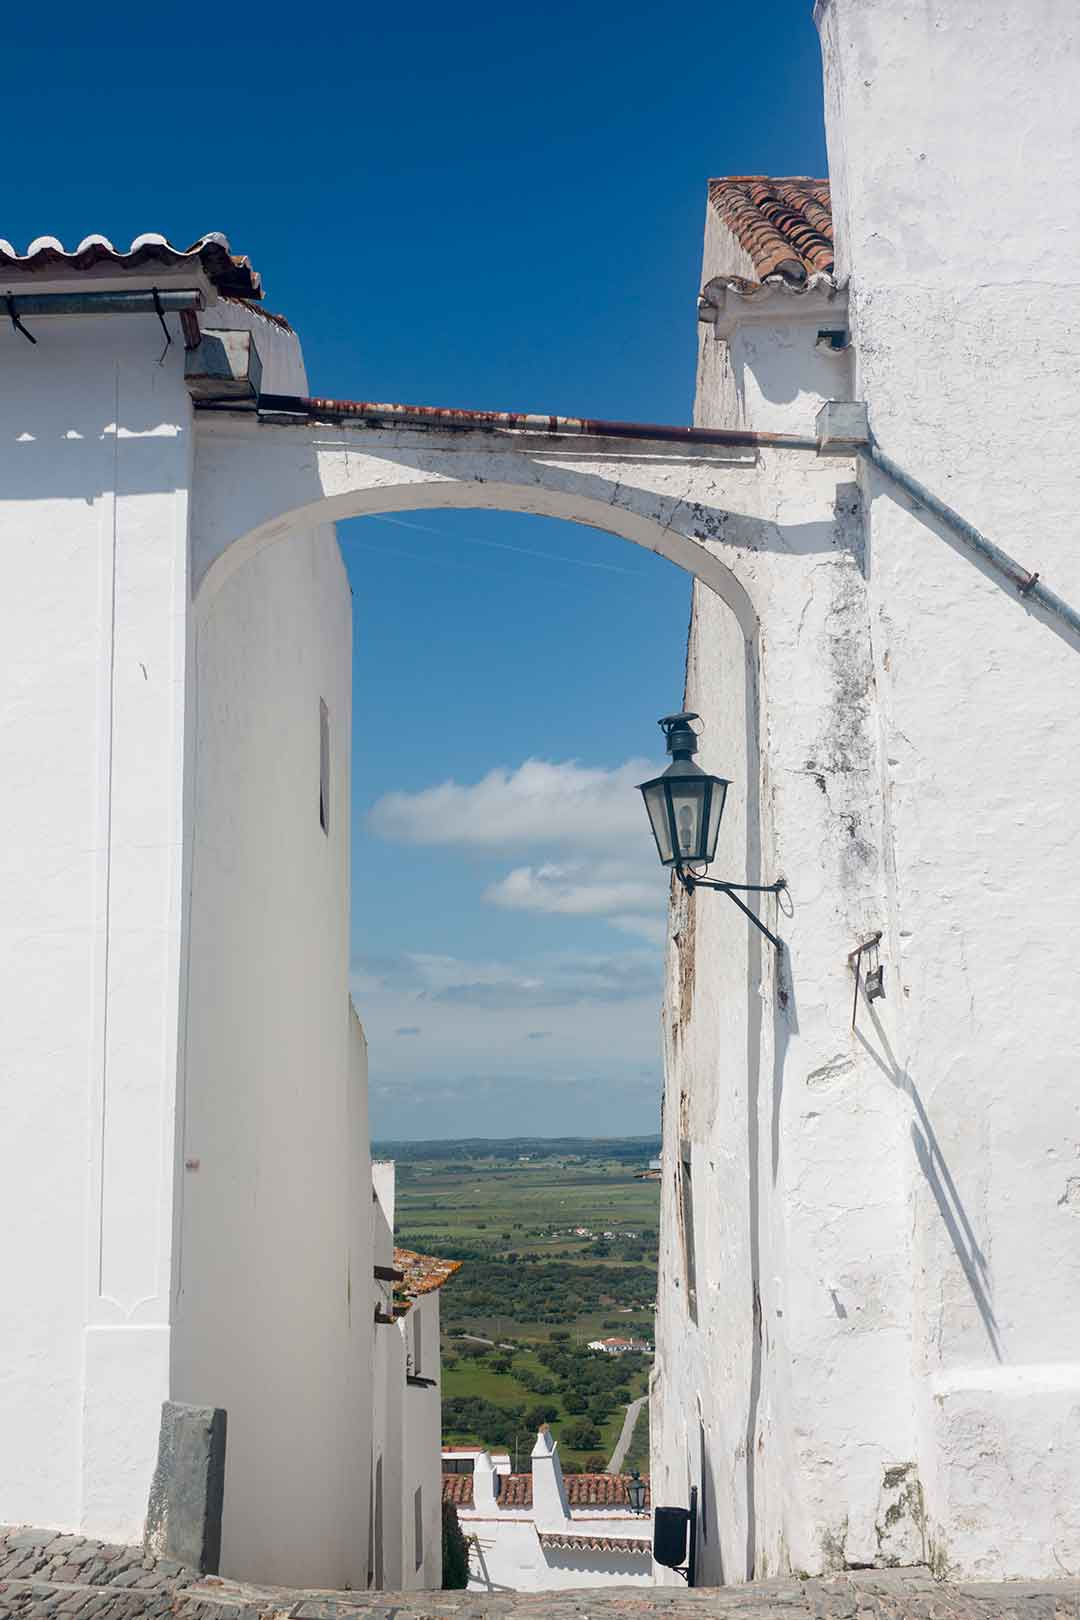 Image of an alleyway in Monsaraz, portugal, looking out over the plain below